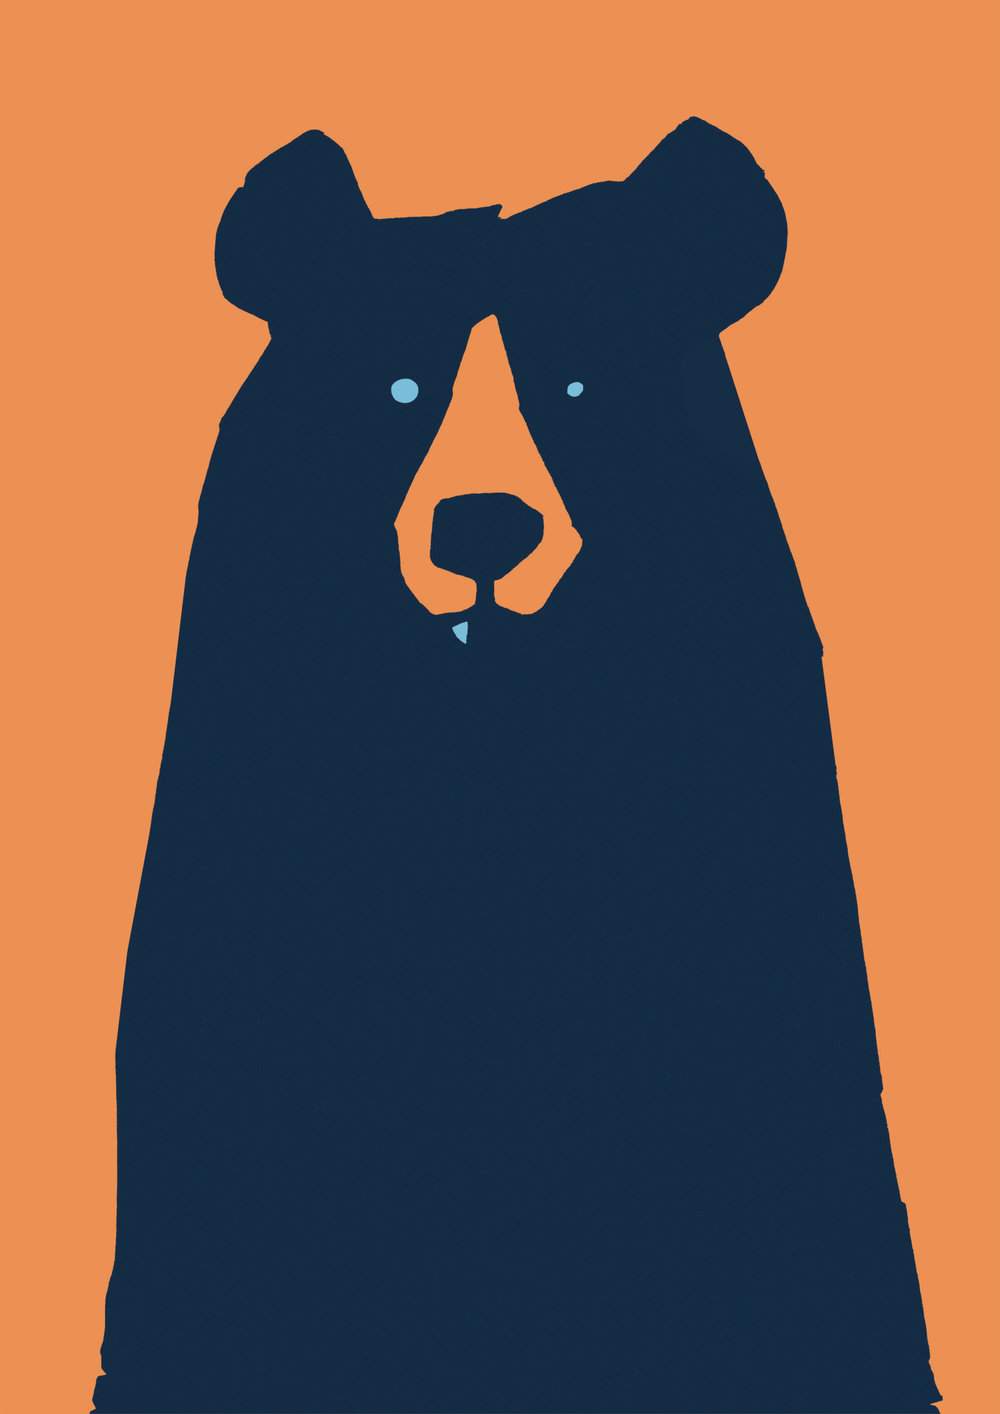 Bear_illustration_phist.jpg